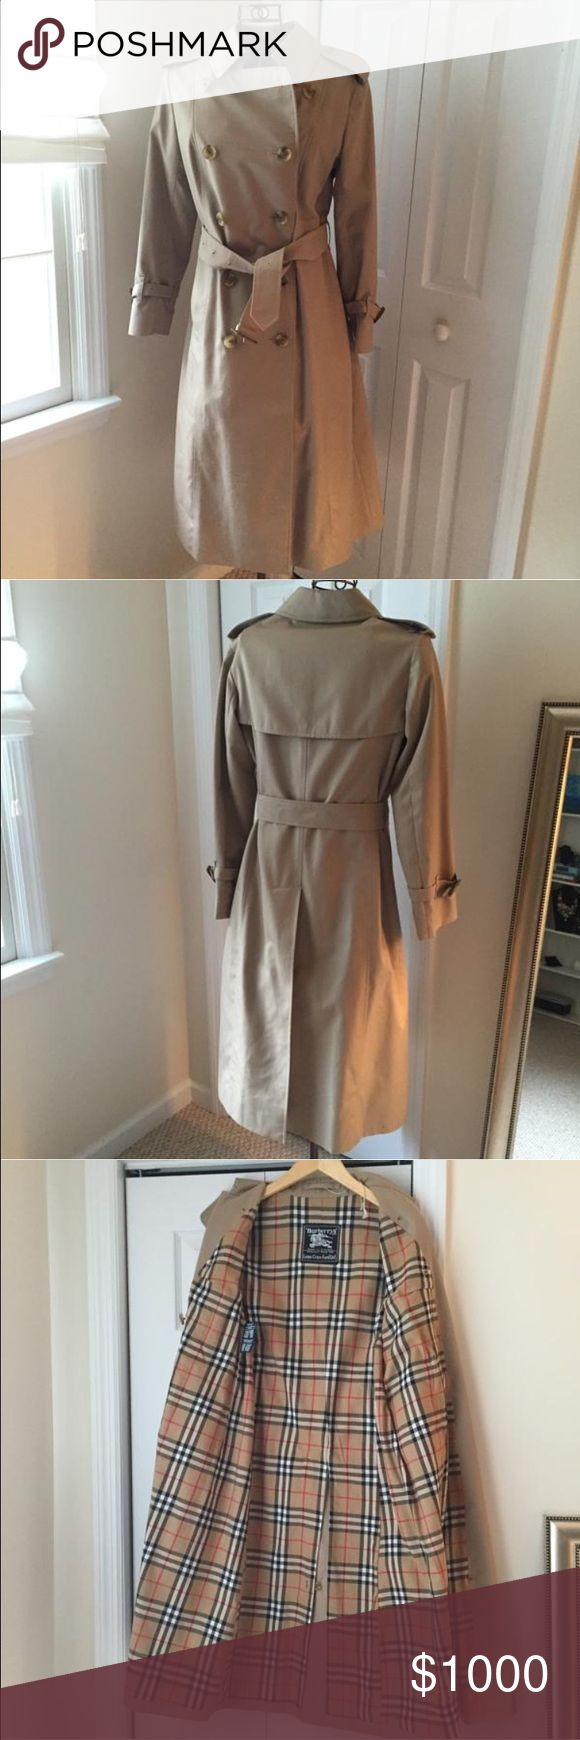 AUTH Burberry Trench Coat Vintage double breasted, tan/beige color, Burberry Trench Coat Size 6 small. Was recently dry cleaned, kept in the bag and looks like new. Has brown leather belt buckle at sleeves and mid waist. The leather buckle have some wear. Has the original checkers Burberry lining interior for  extra warmth. Lining not removable. Burberry Jackets & Coats Trench Coats